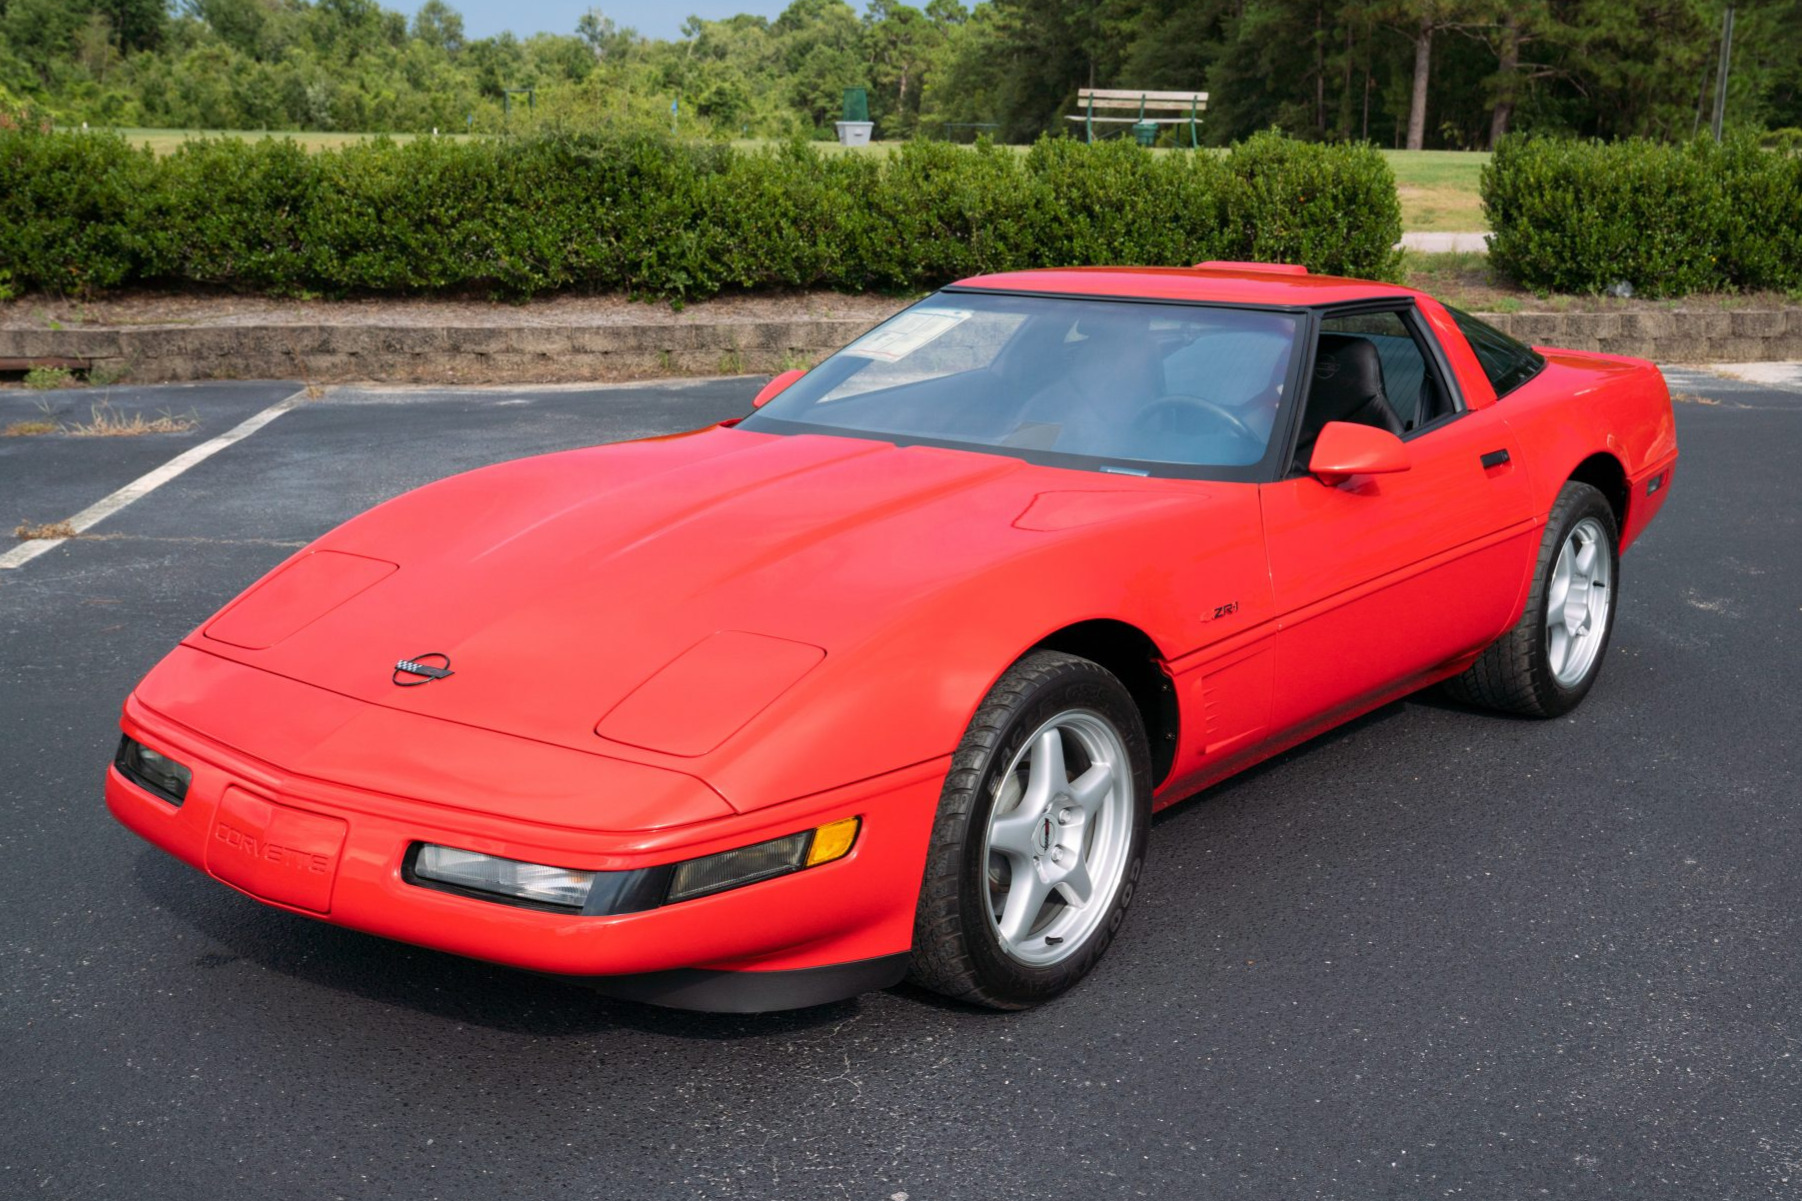 1995 Corvette ZR-1 for sale